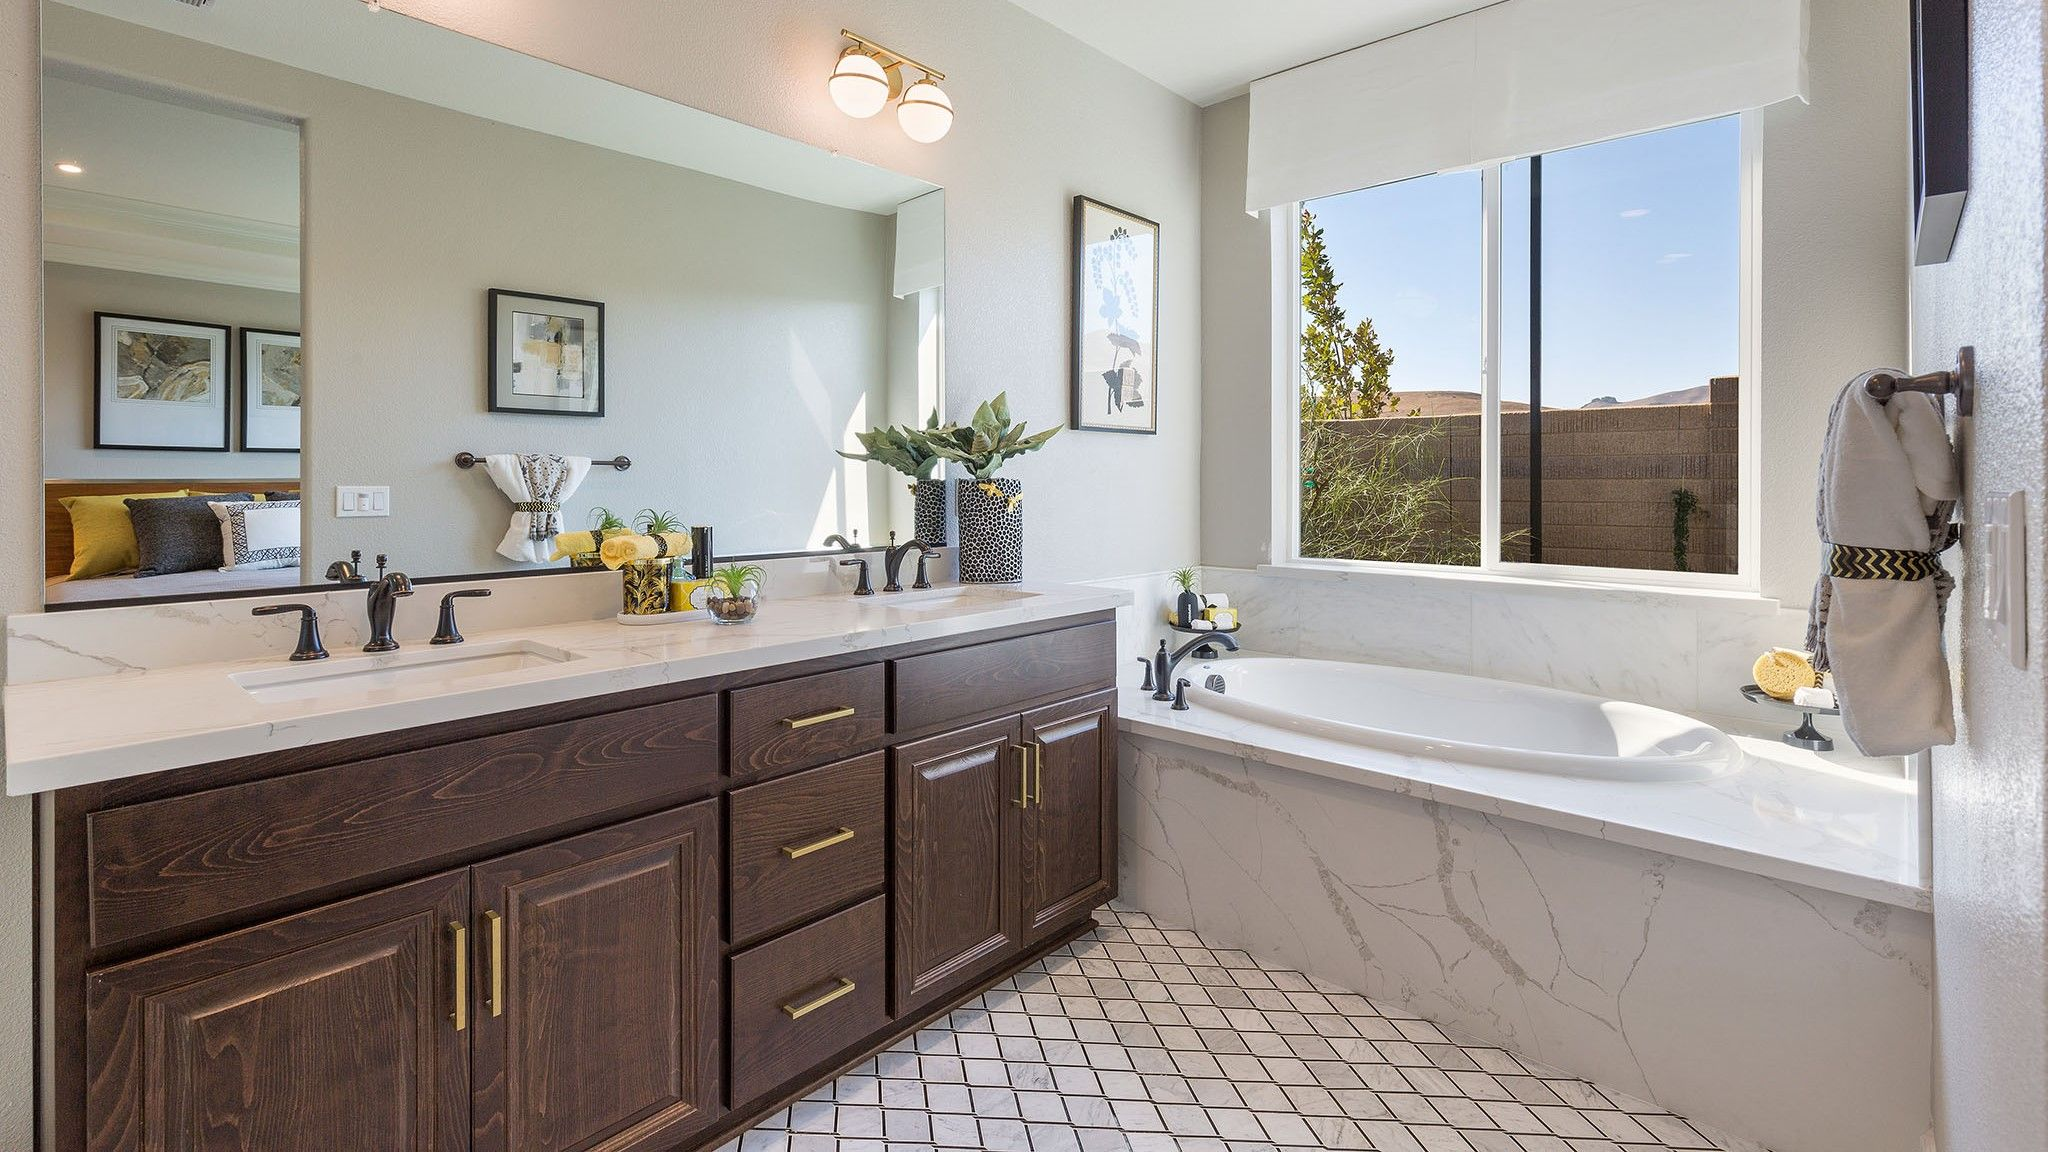 Bathroom featured in the Adley By Seeno Homes in Vallejo-Napa, CA